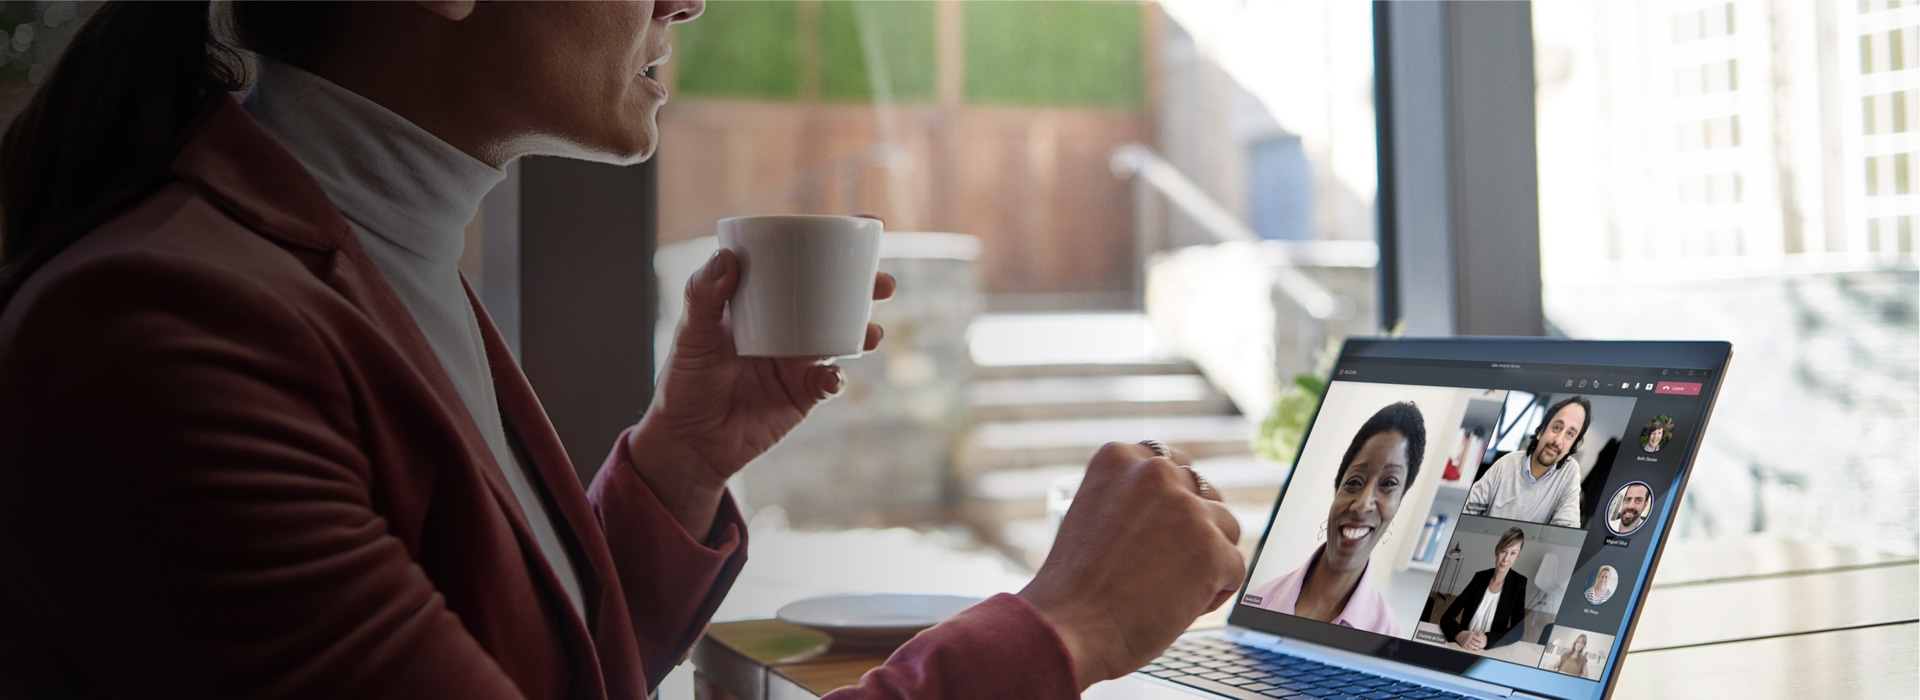 A person holding a coffee cup while on a Teams video call on a laptop.